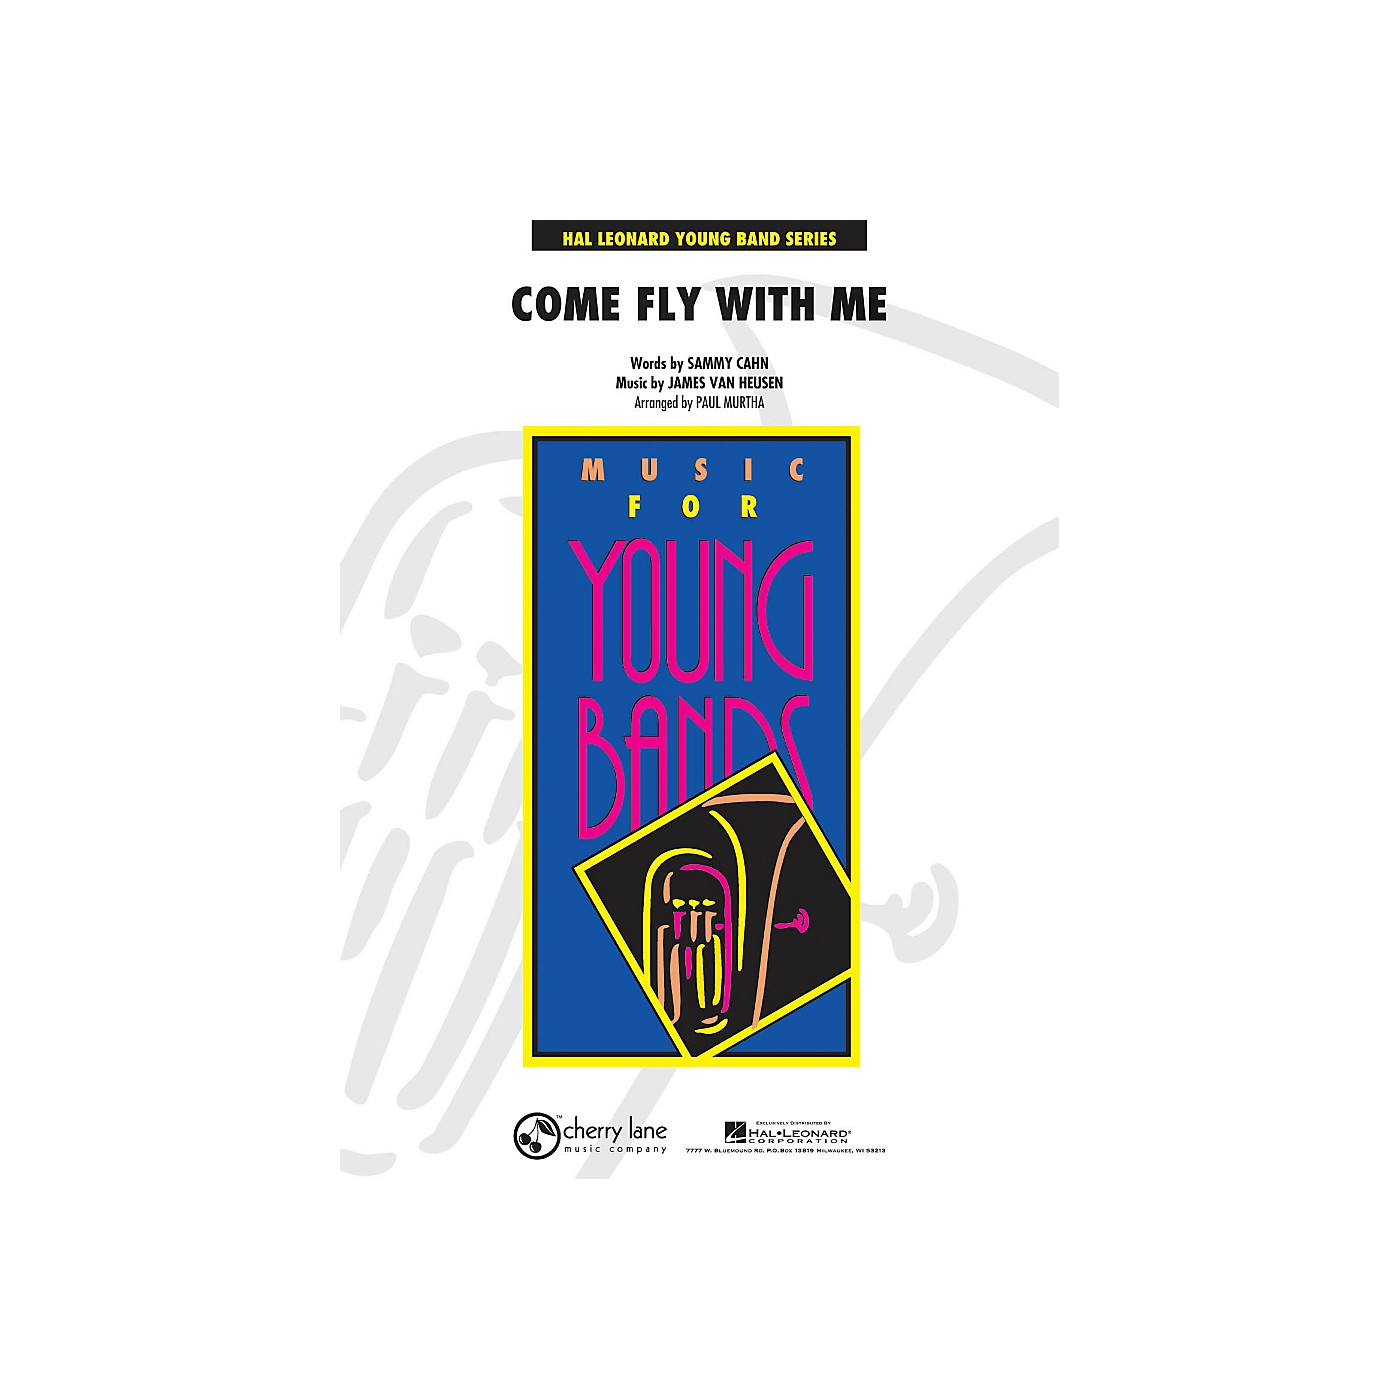 Hal Leonard Come Fly With Me - Young Concert Band Series Level 3 thumbnail